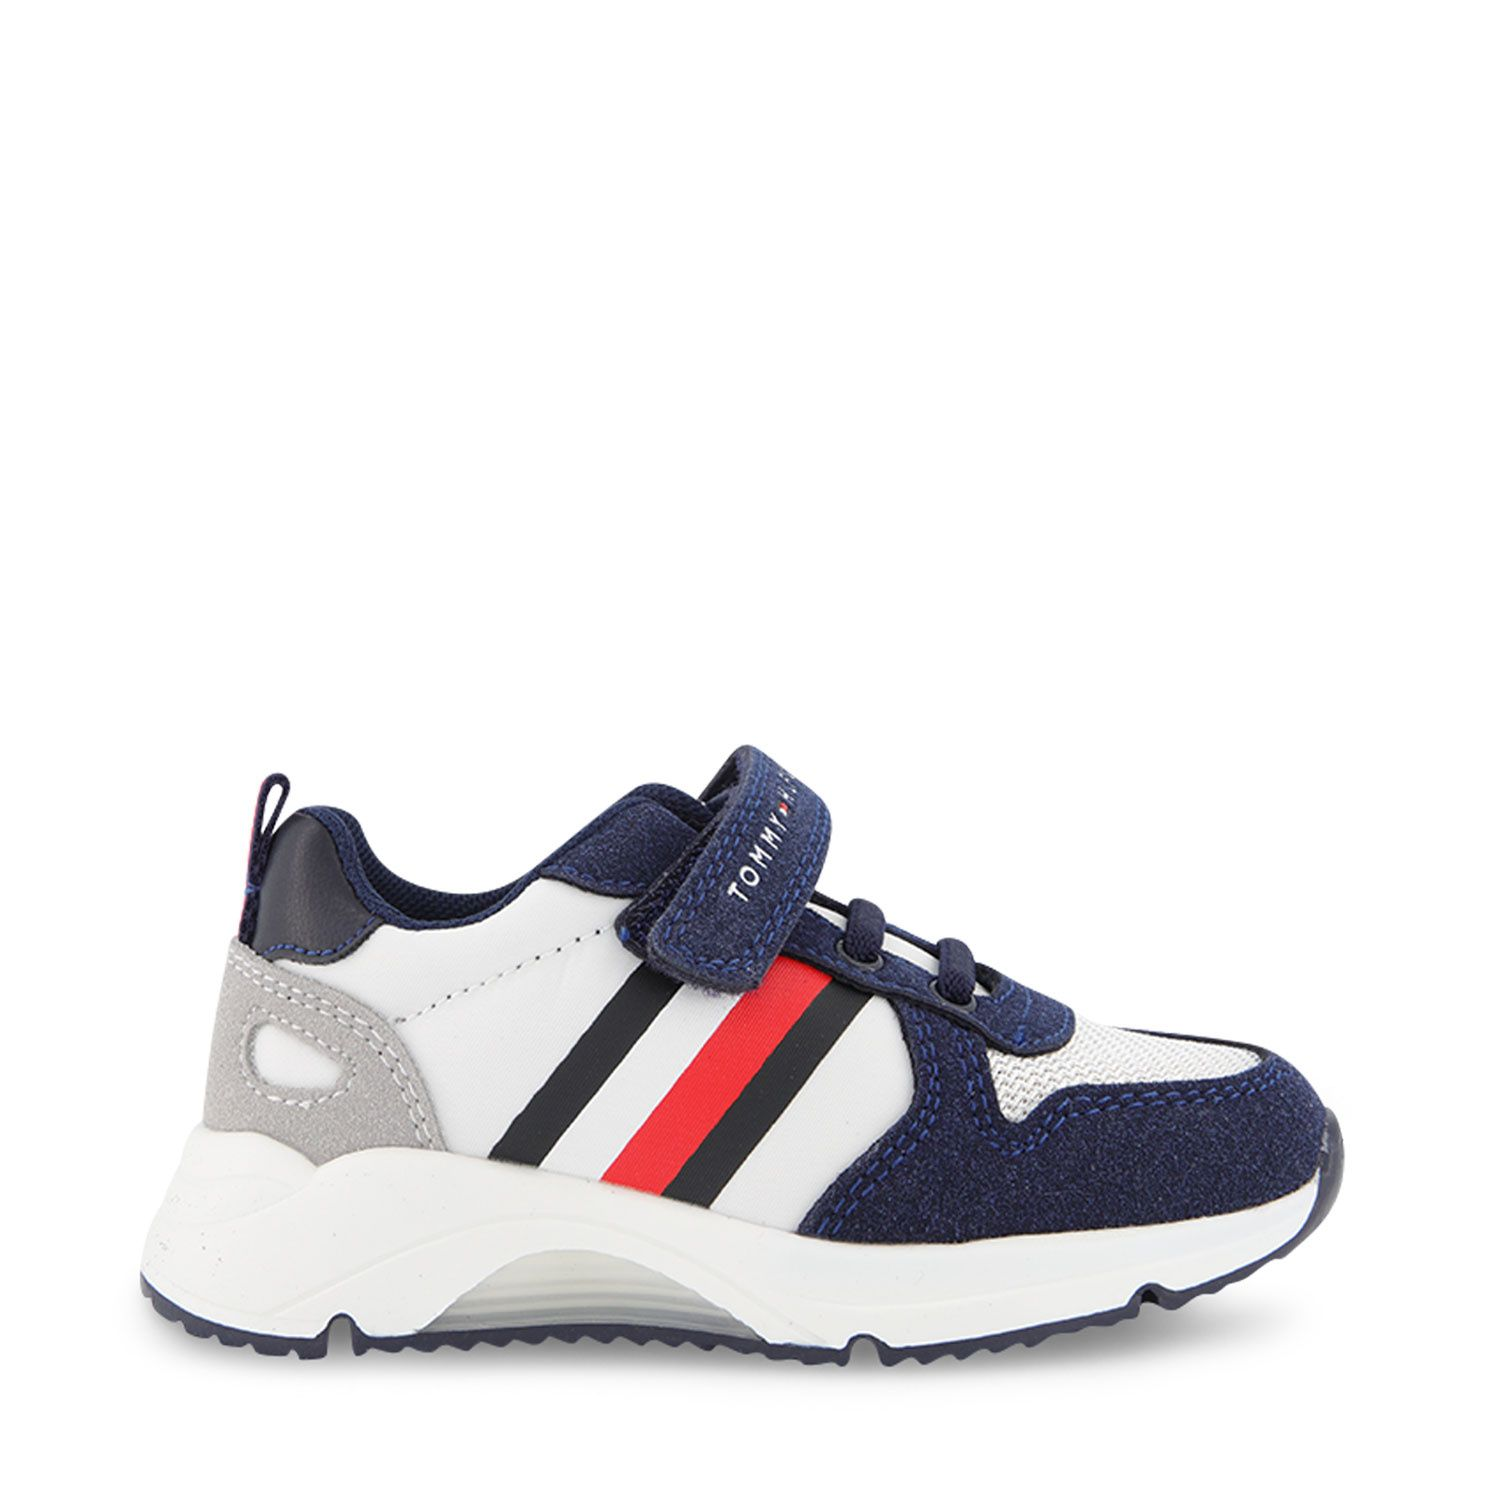 Picture of Tommy Hilfiger 31090 kids sneakers white